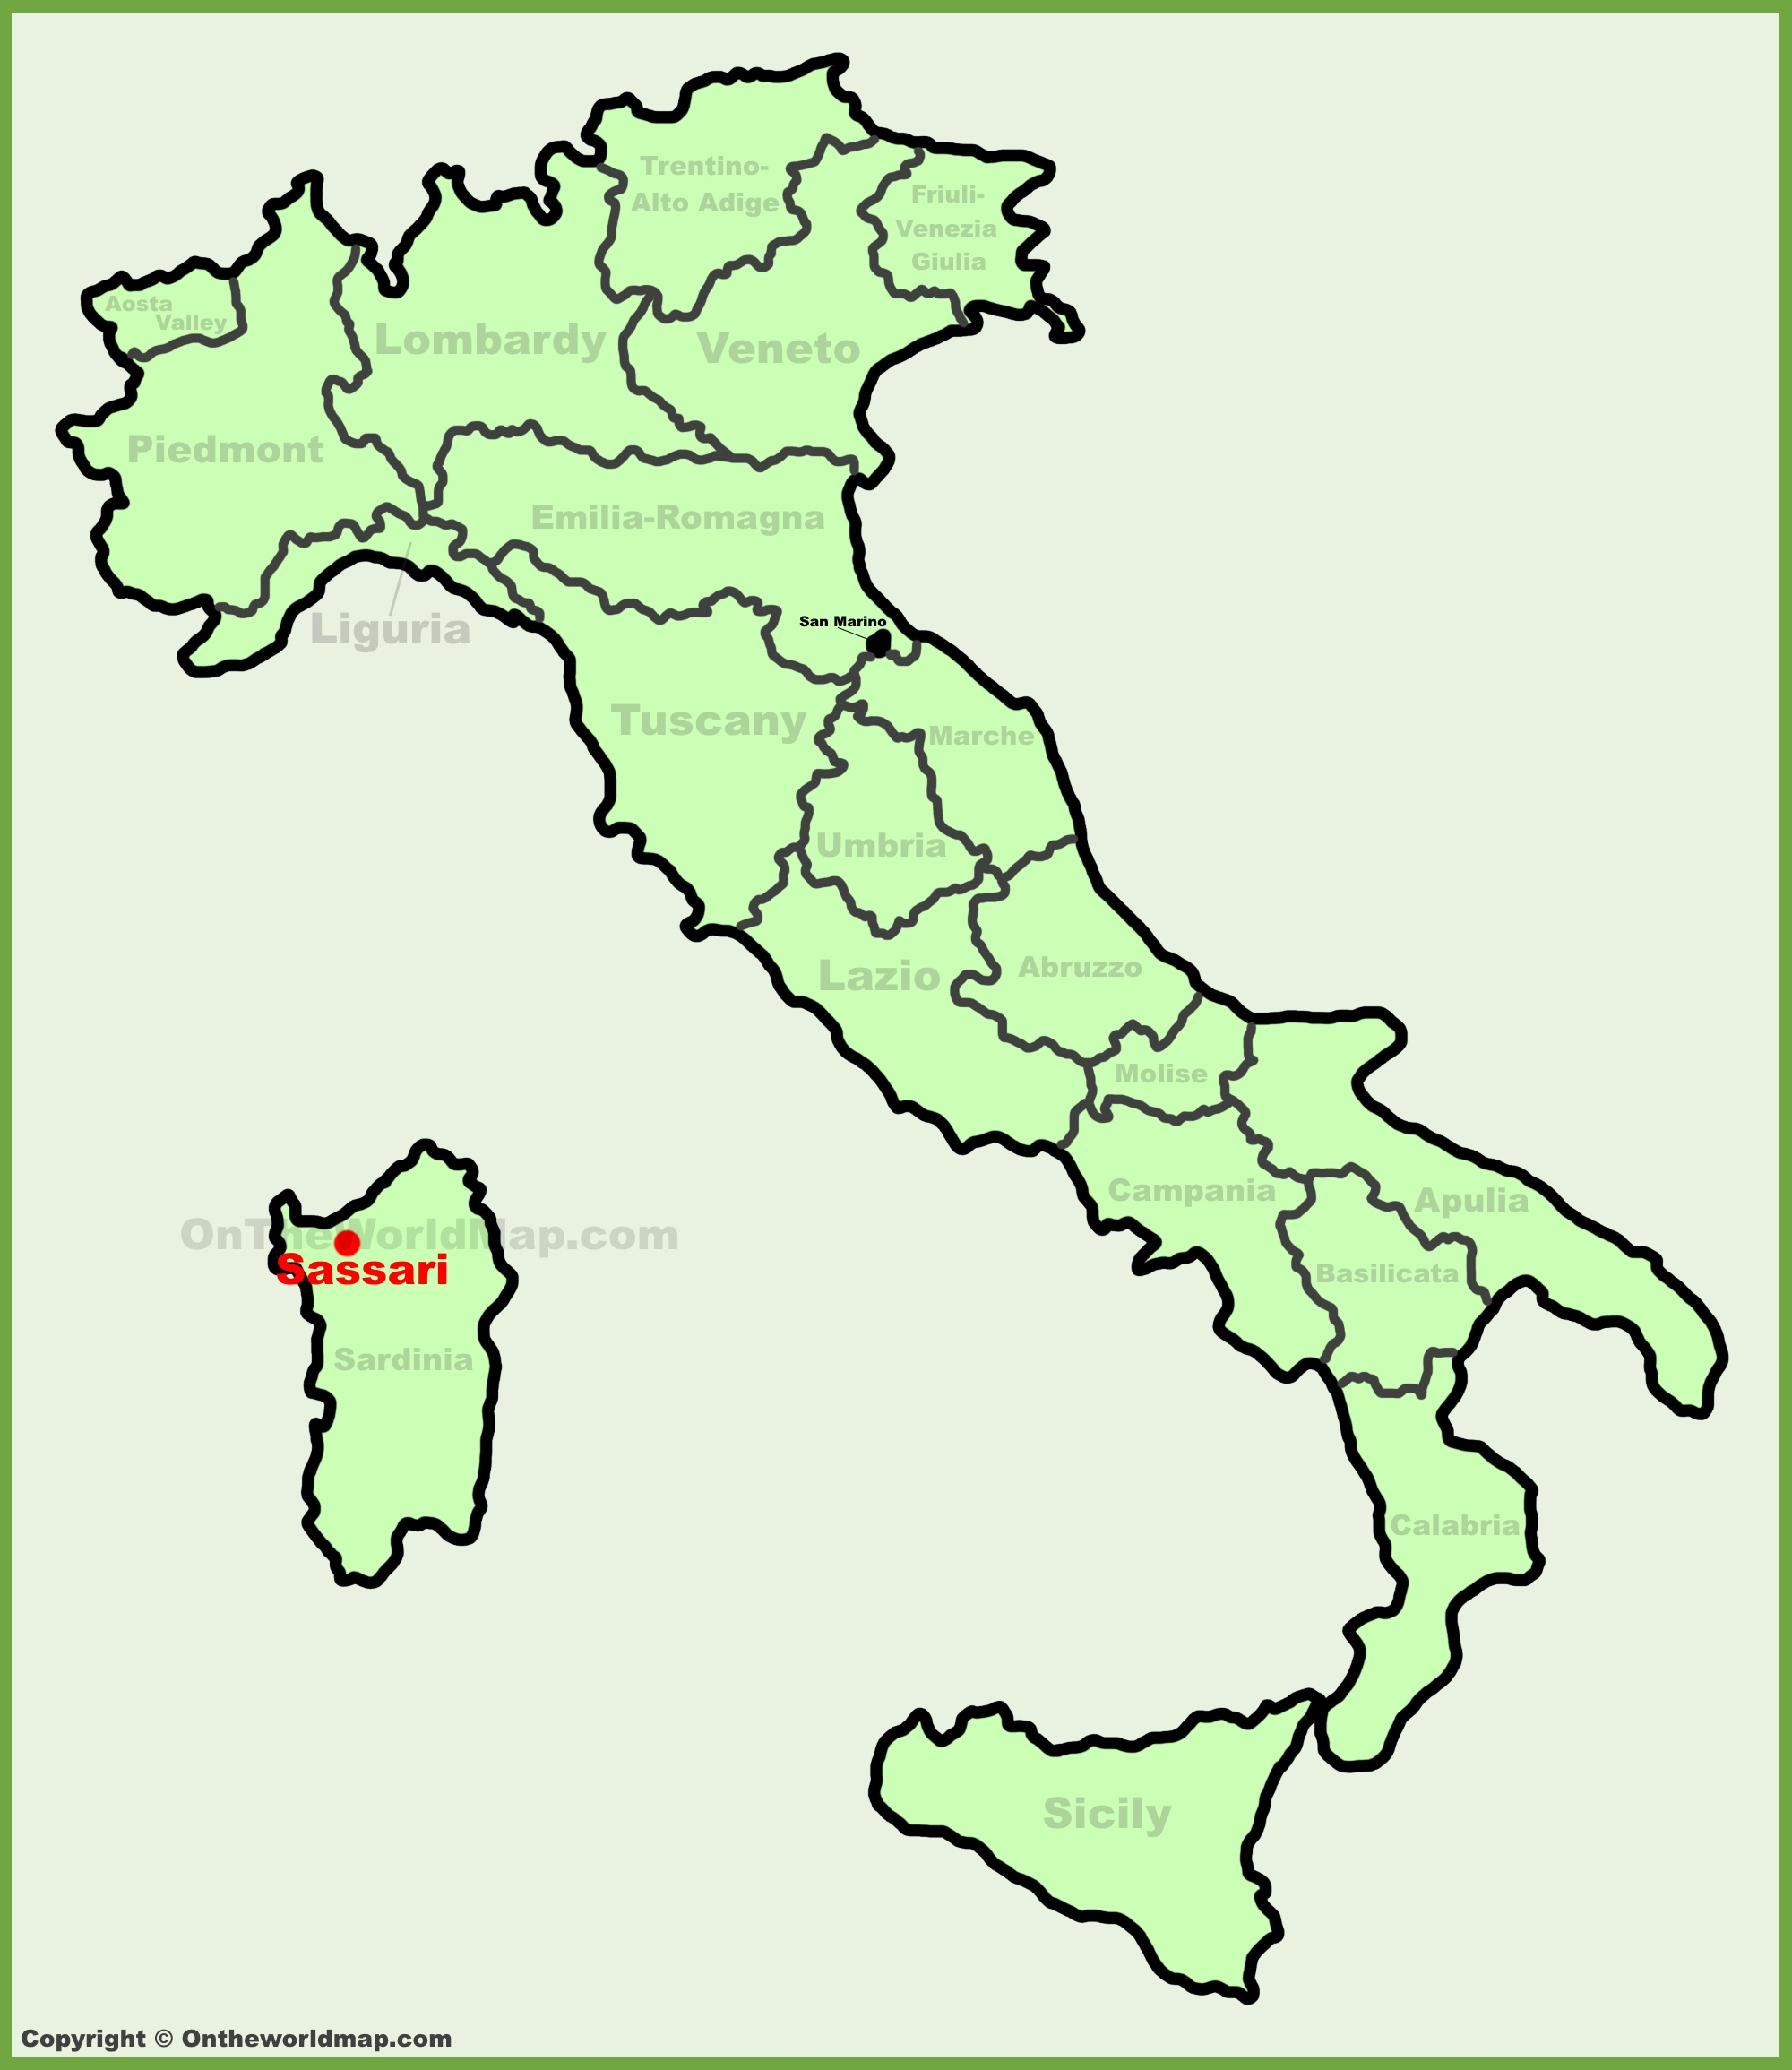 Sassari location on the Italy map